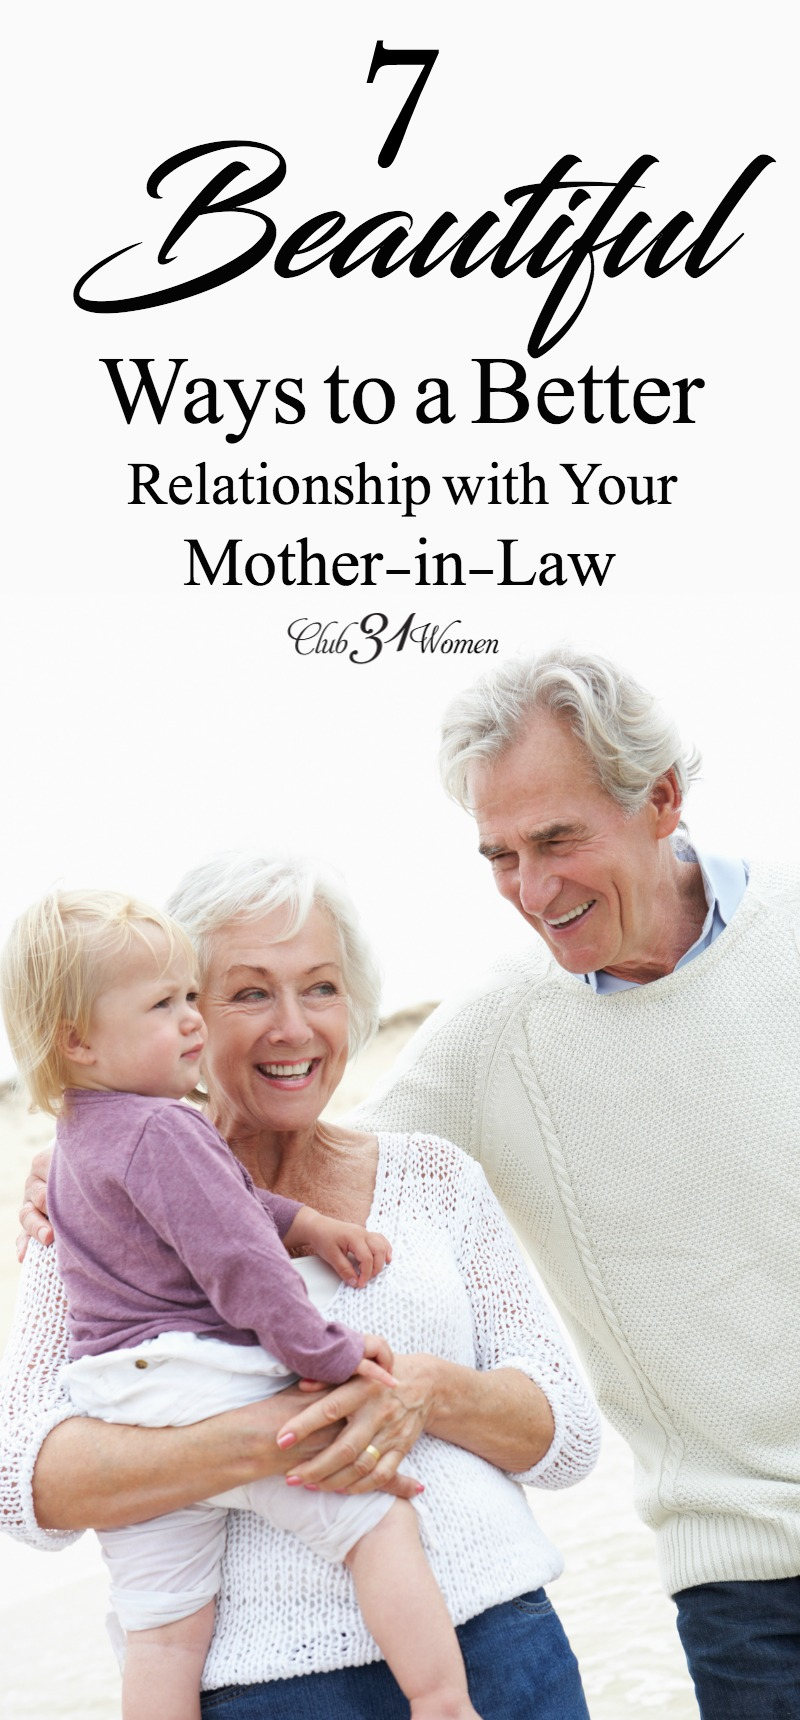 Do you find your mother-in-law a challenge? Here are 7 keys to get along with and grow in your relationship with your mother-in-law, even when it's tough.  via @Club31Women